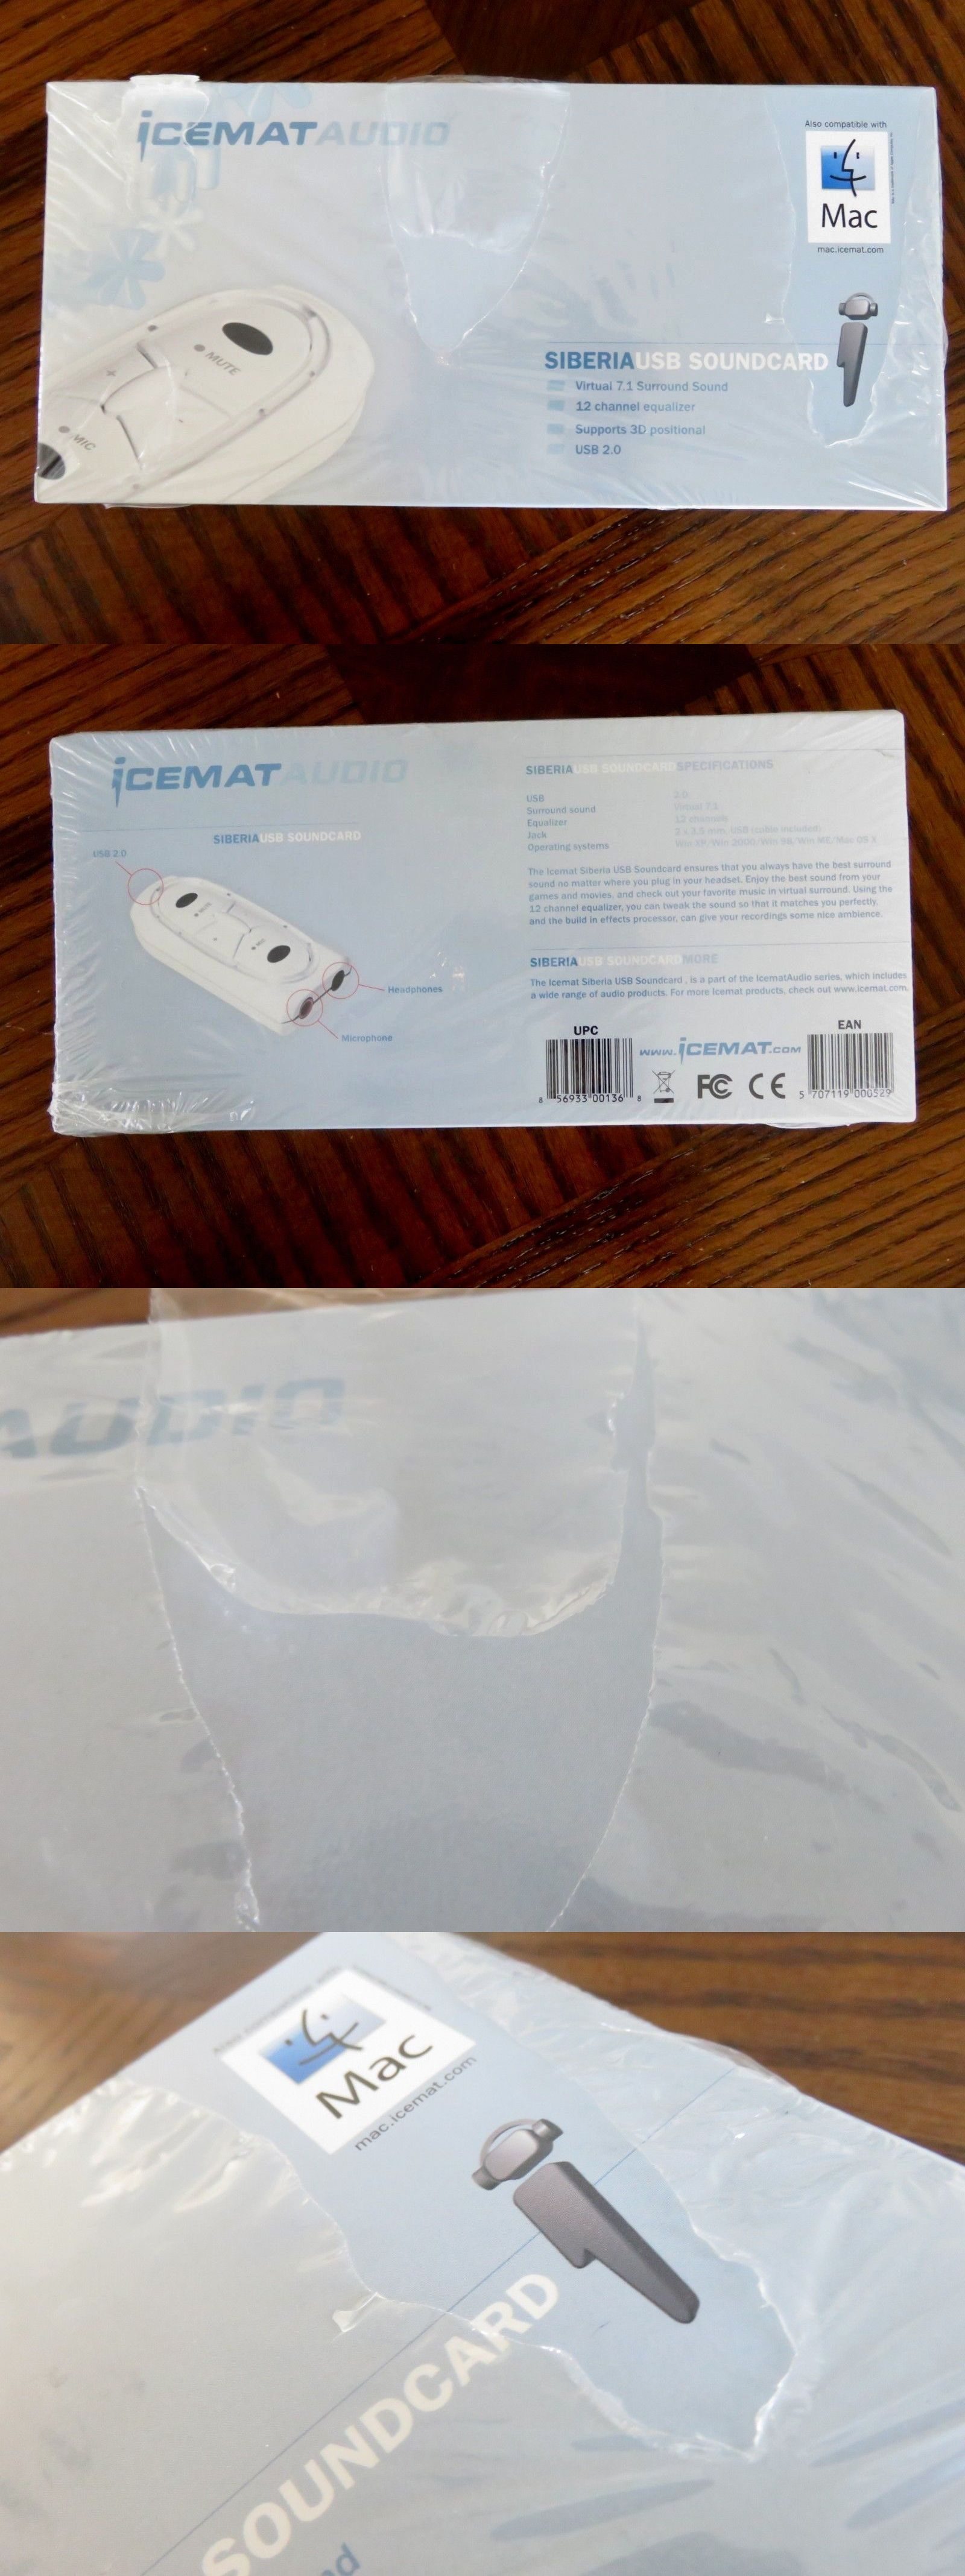 ICEMAT SIBERIA USB SOUND CARD DRIVER FOR MAC